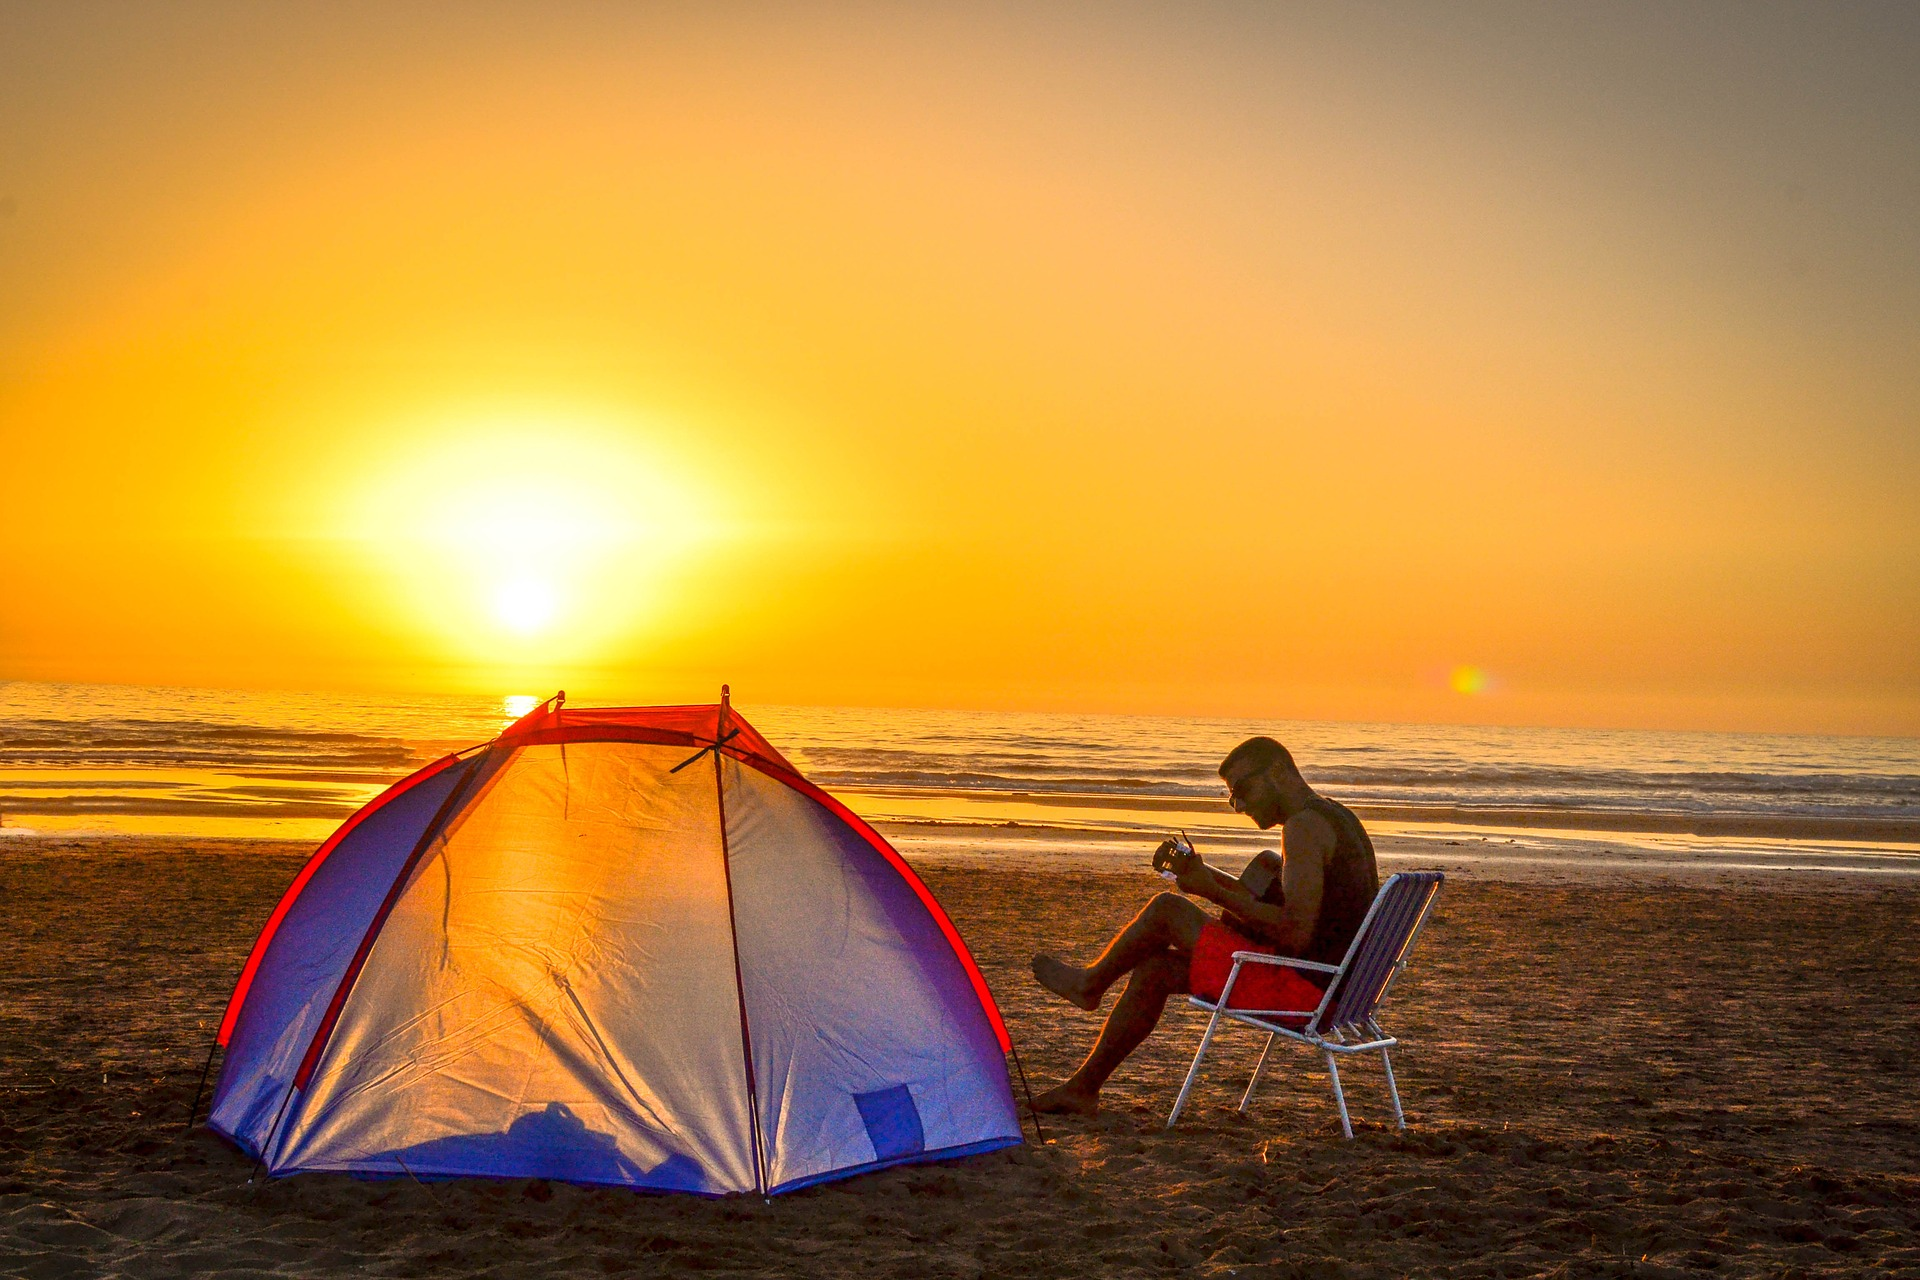 TIPS FOR A SMOOTH CAMPING TRIP